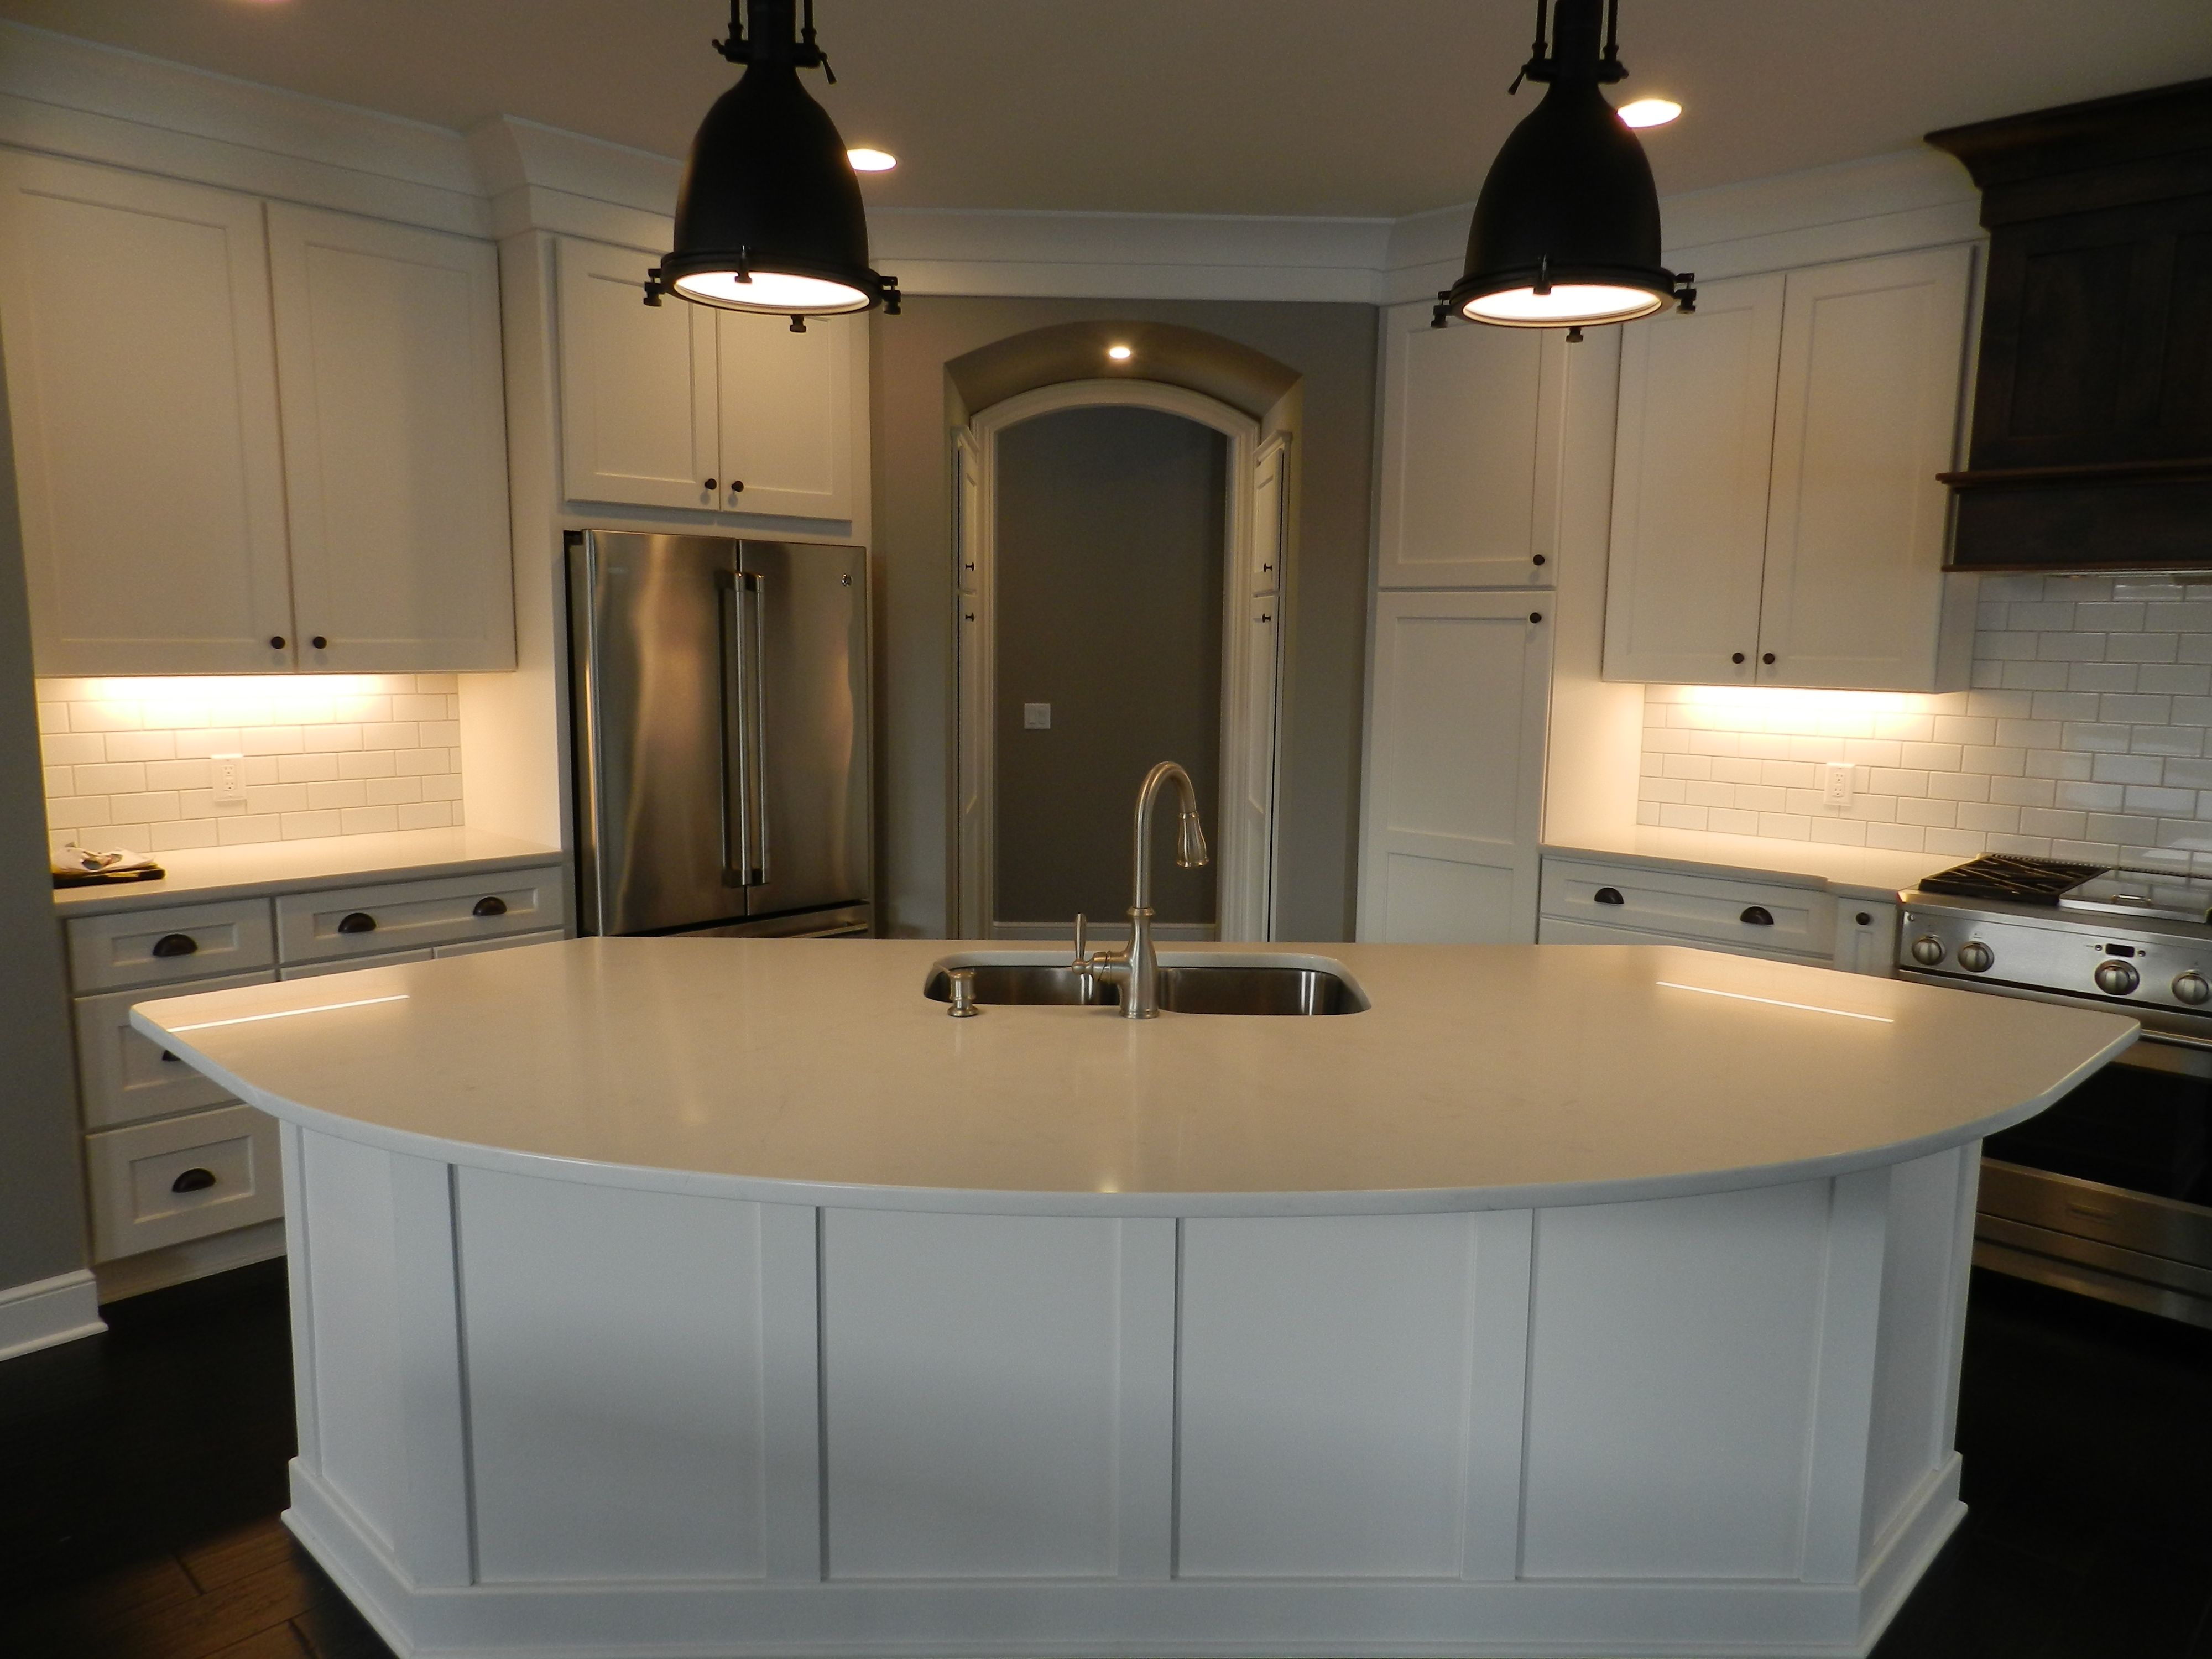 Kitchen featured in the Kimberly C1 By Classic Homes in Akron, OH